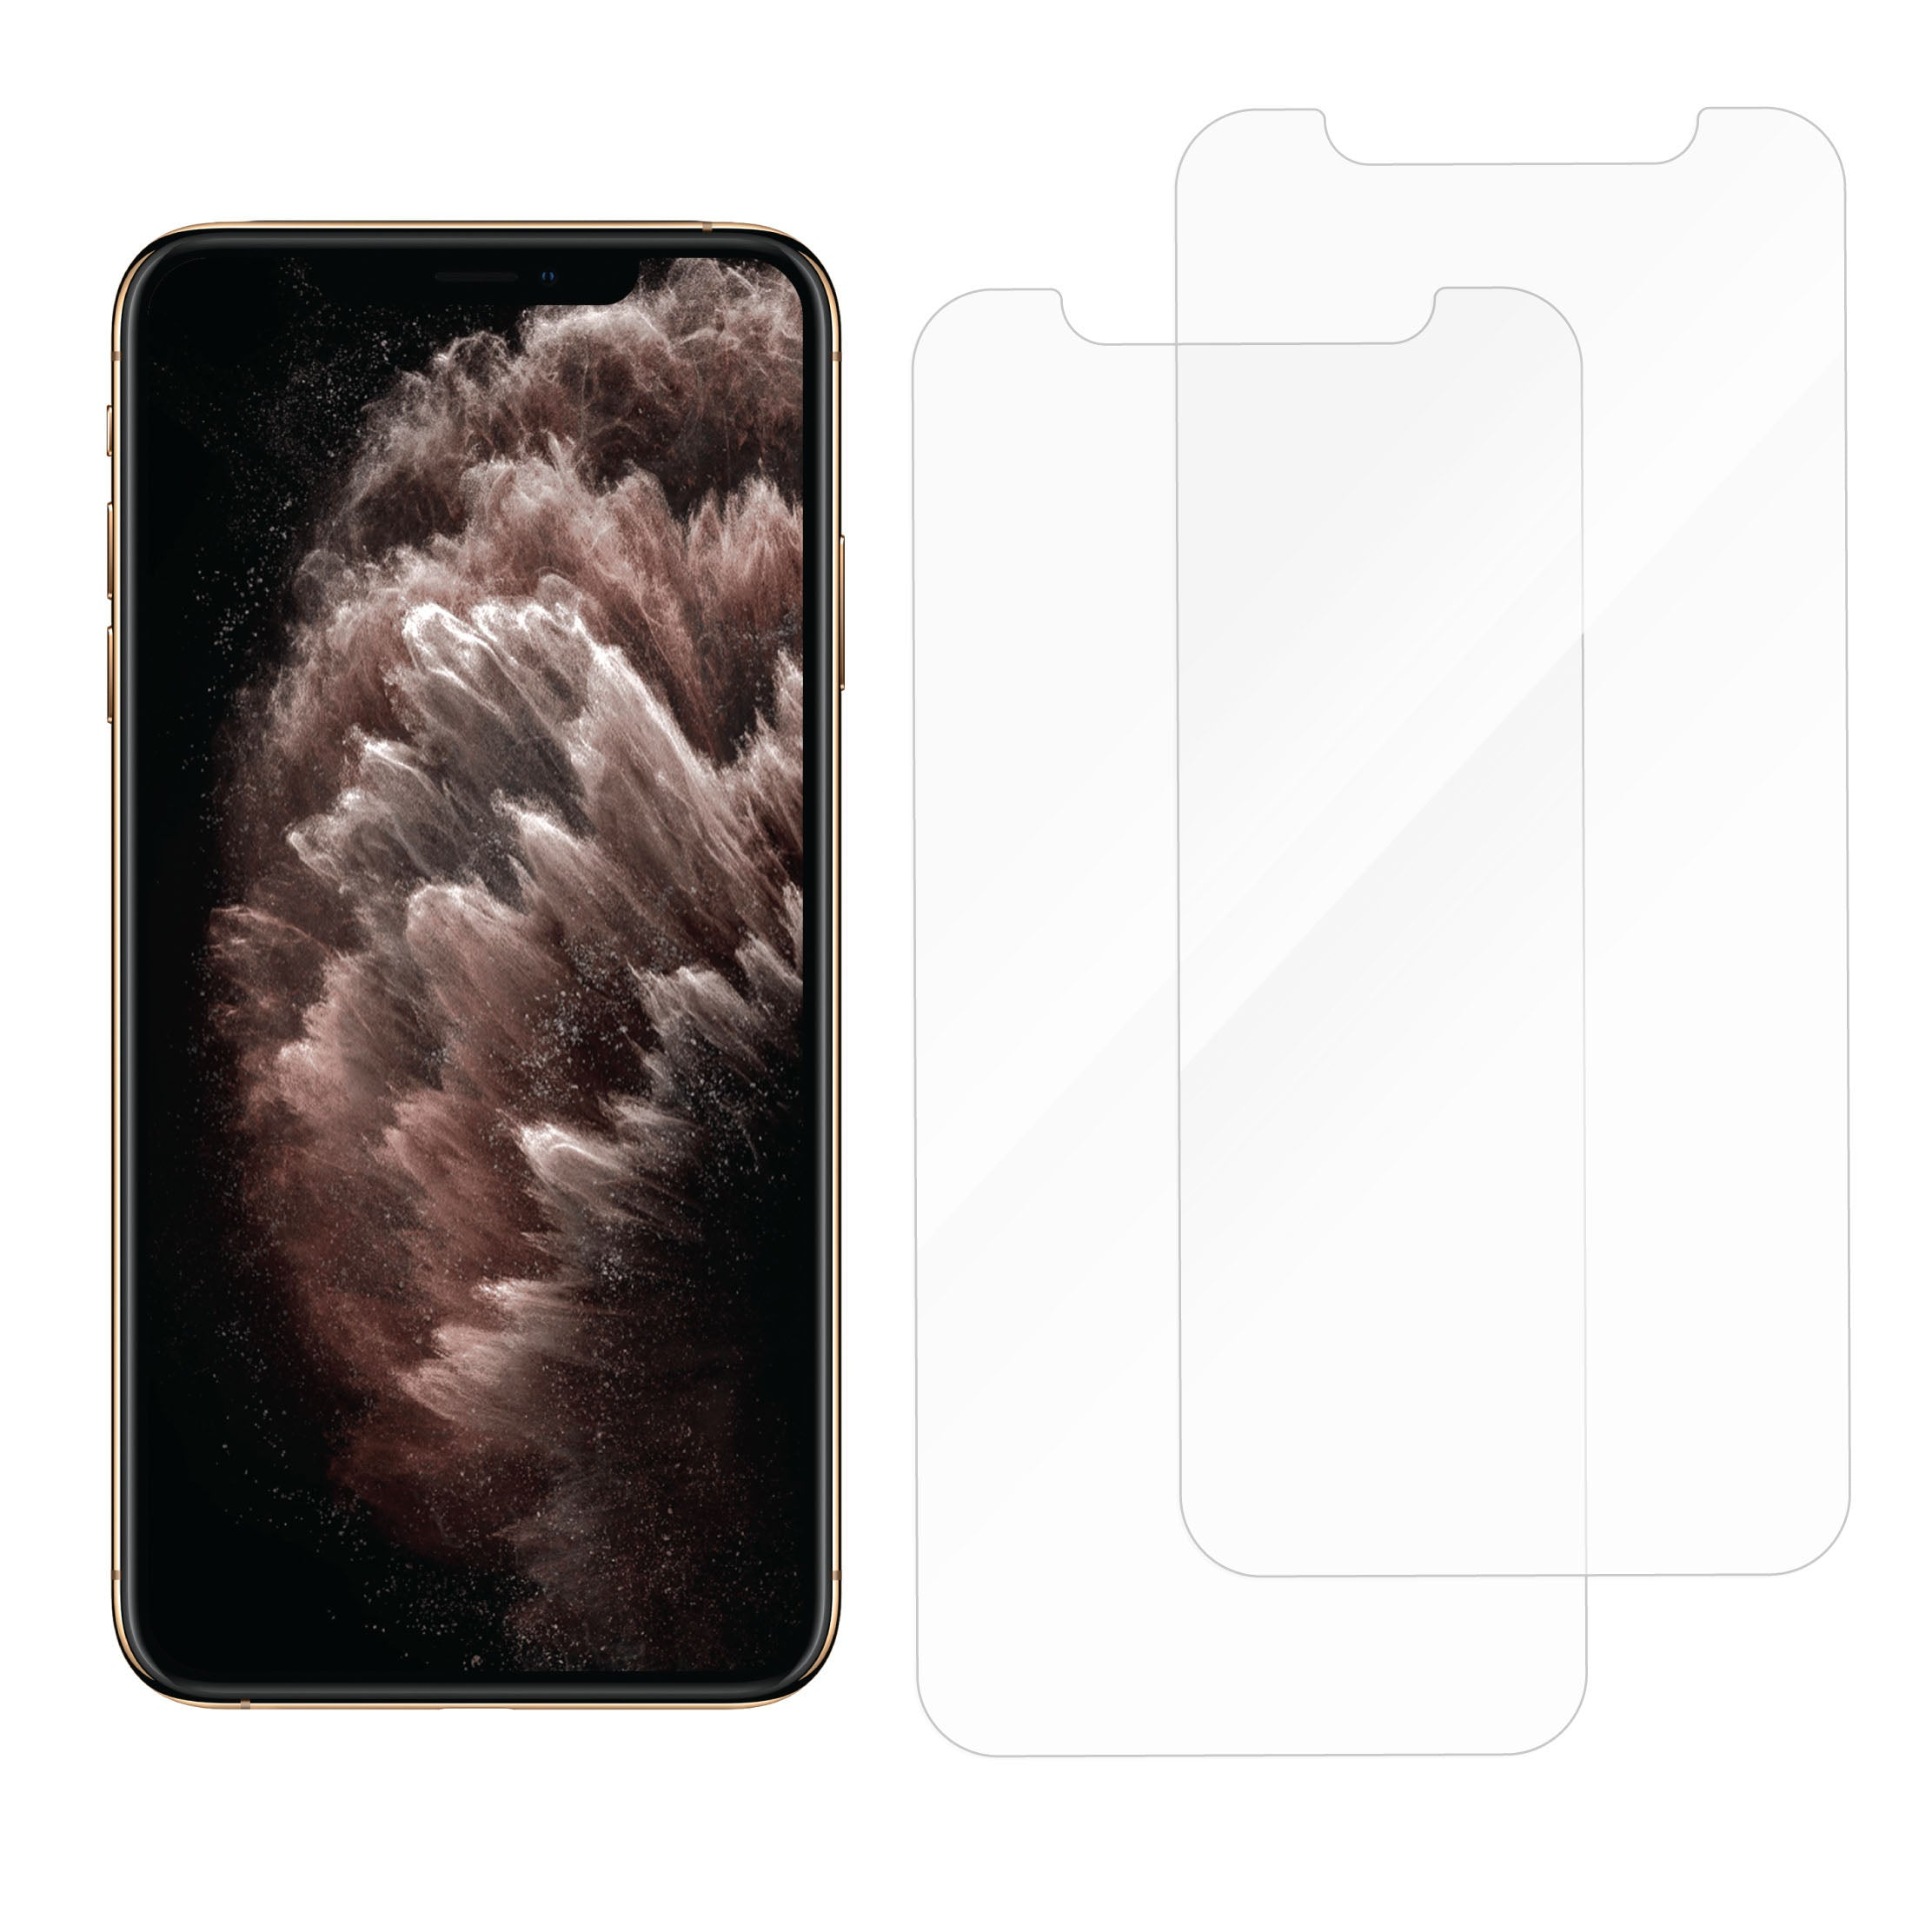 Protective Glass for iPhone 11 Pro Max/XS Max<br>Dual Pack